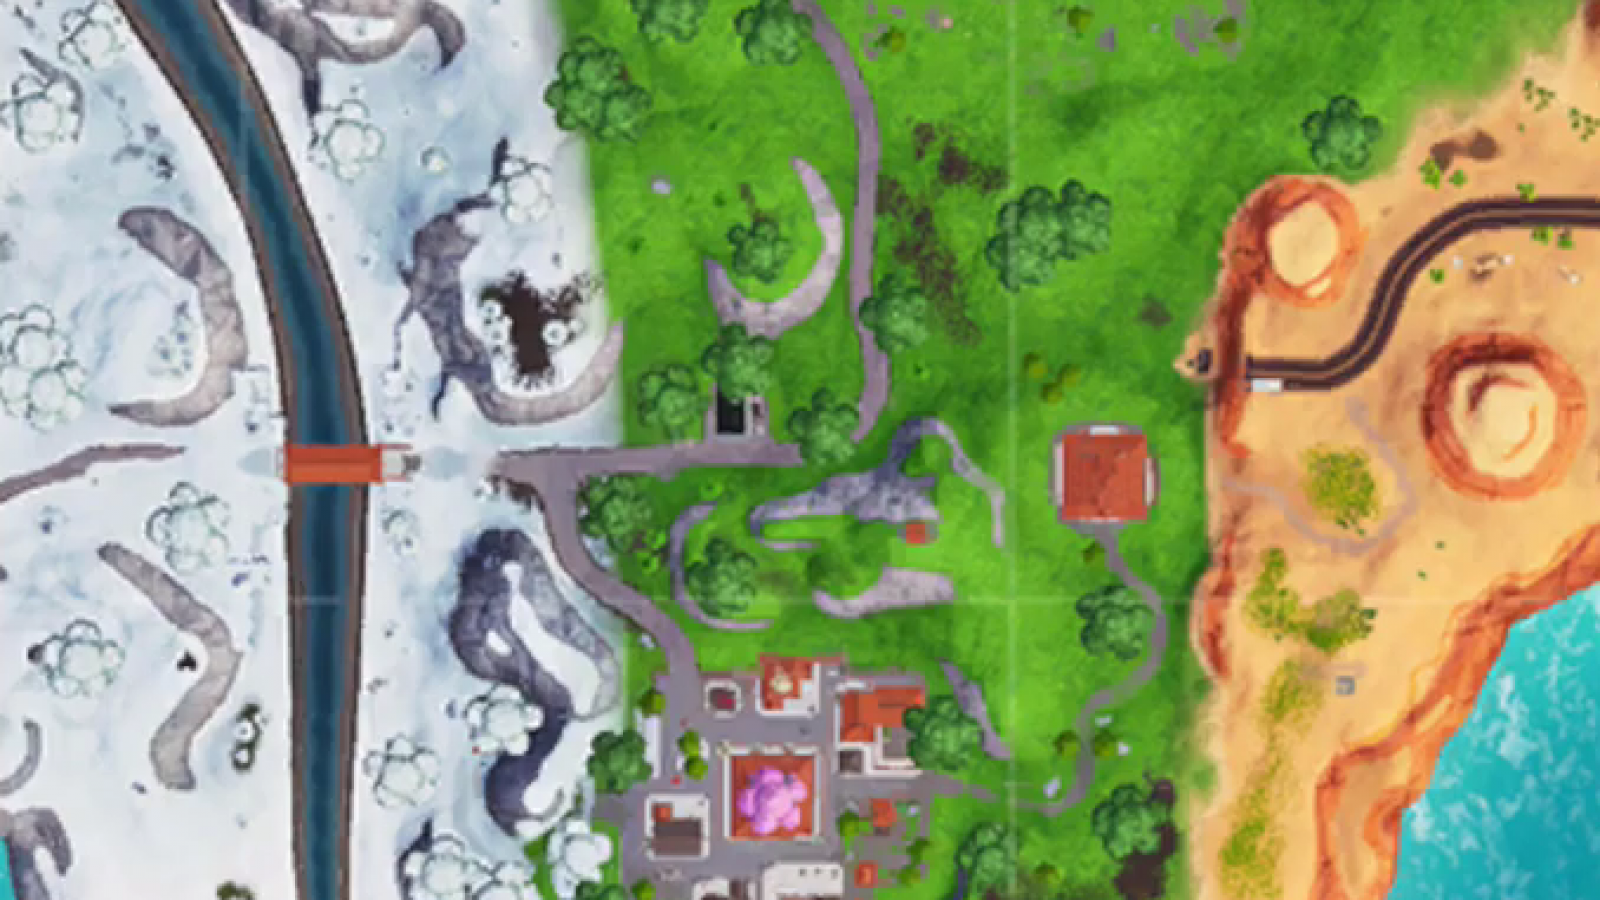 Fortnite Furthest North South East West Locations Week 2